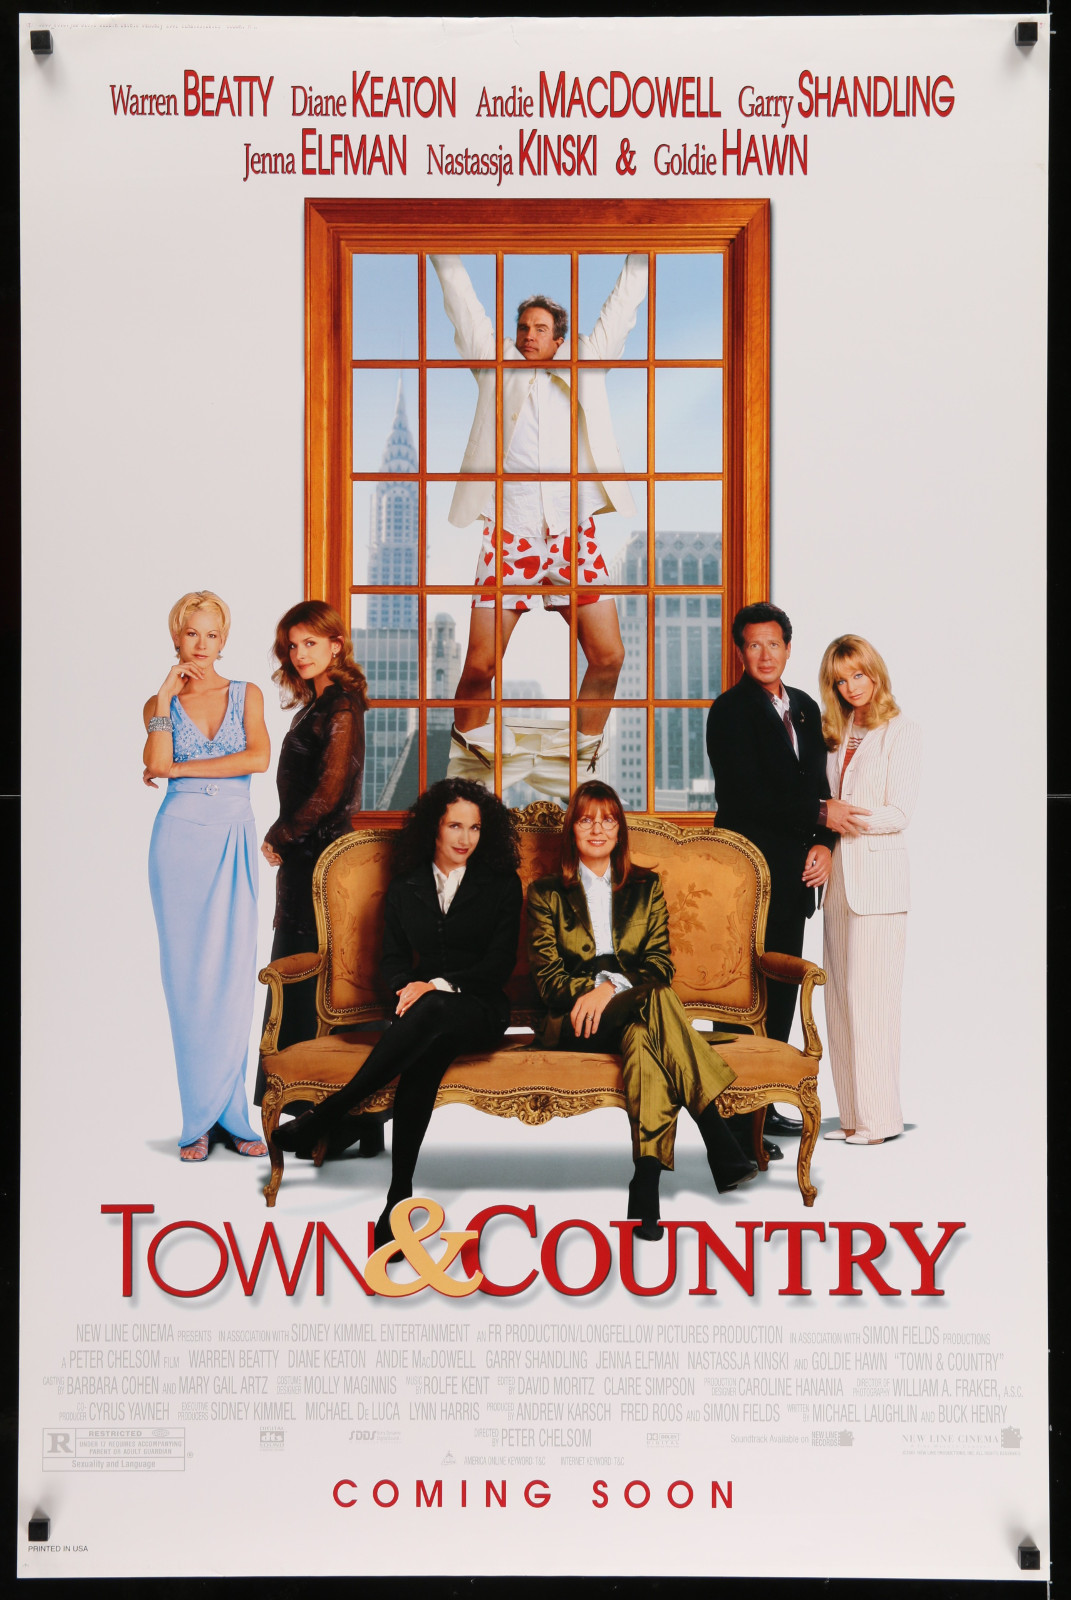 Town & Country 2A422 A Part Of A Lot 19 Unfolded Mostly Double-Sided 27X41 One-Sheets '90S-00S Great Movie Images!